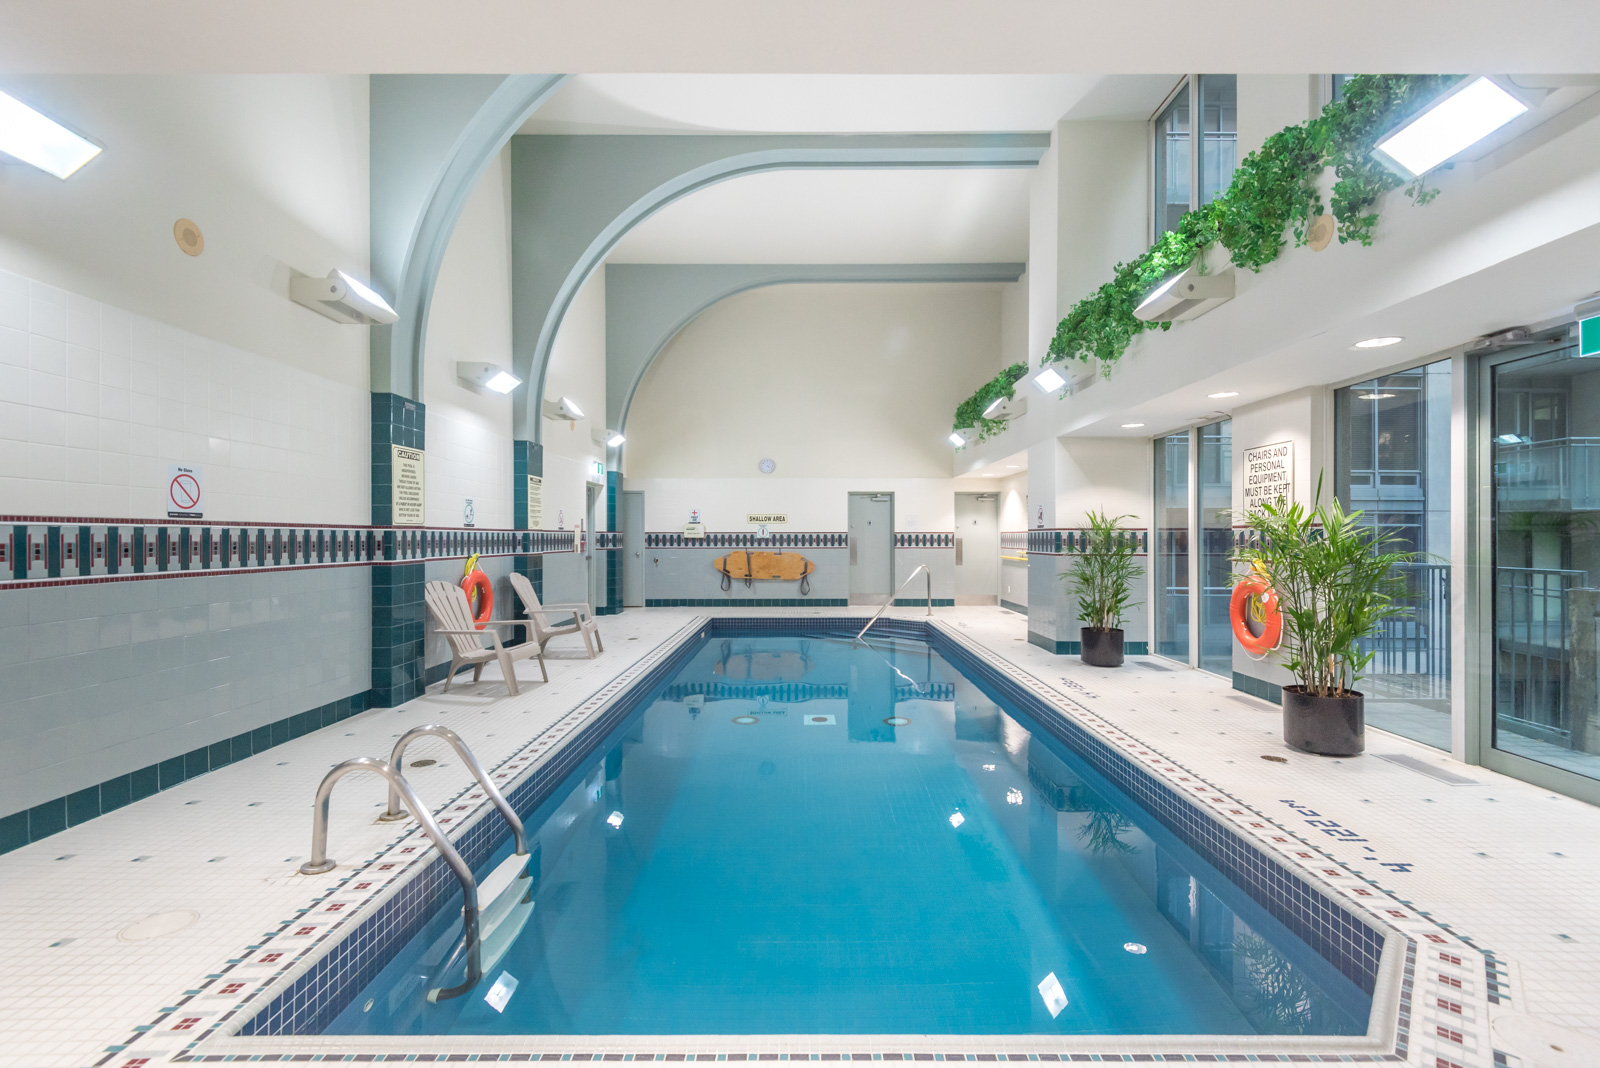 Gorgeous image of The Metropole's indoor pool. The water is so blue and deep.